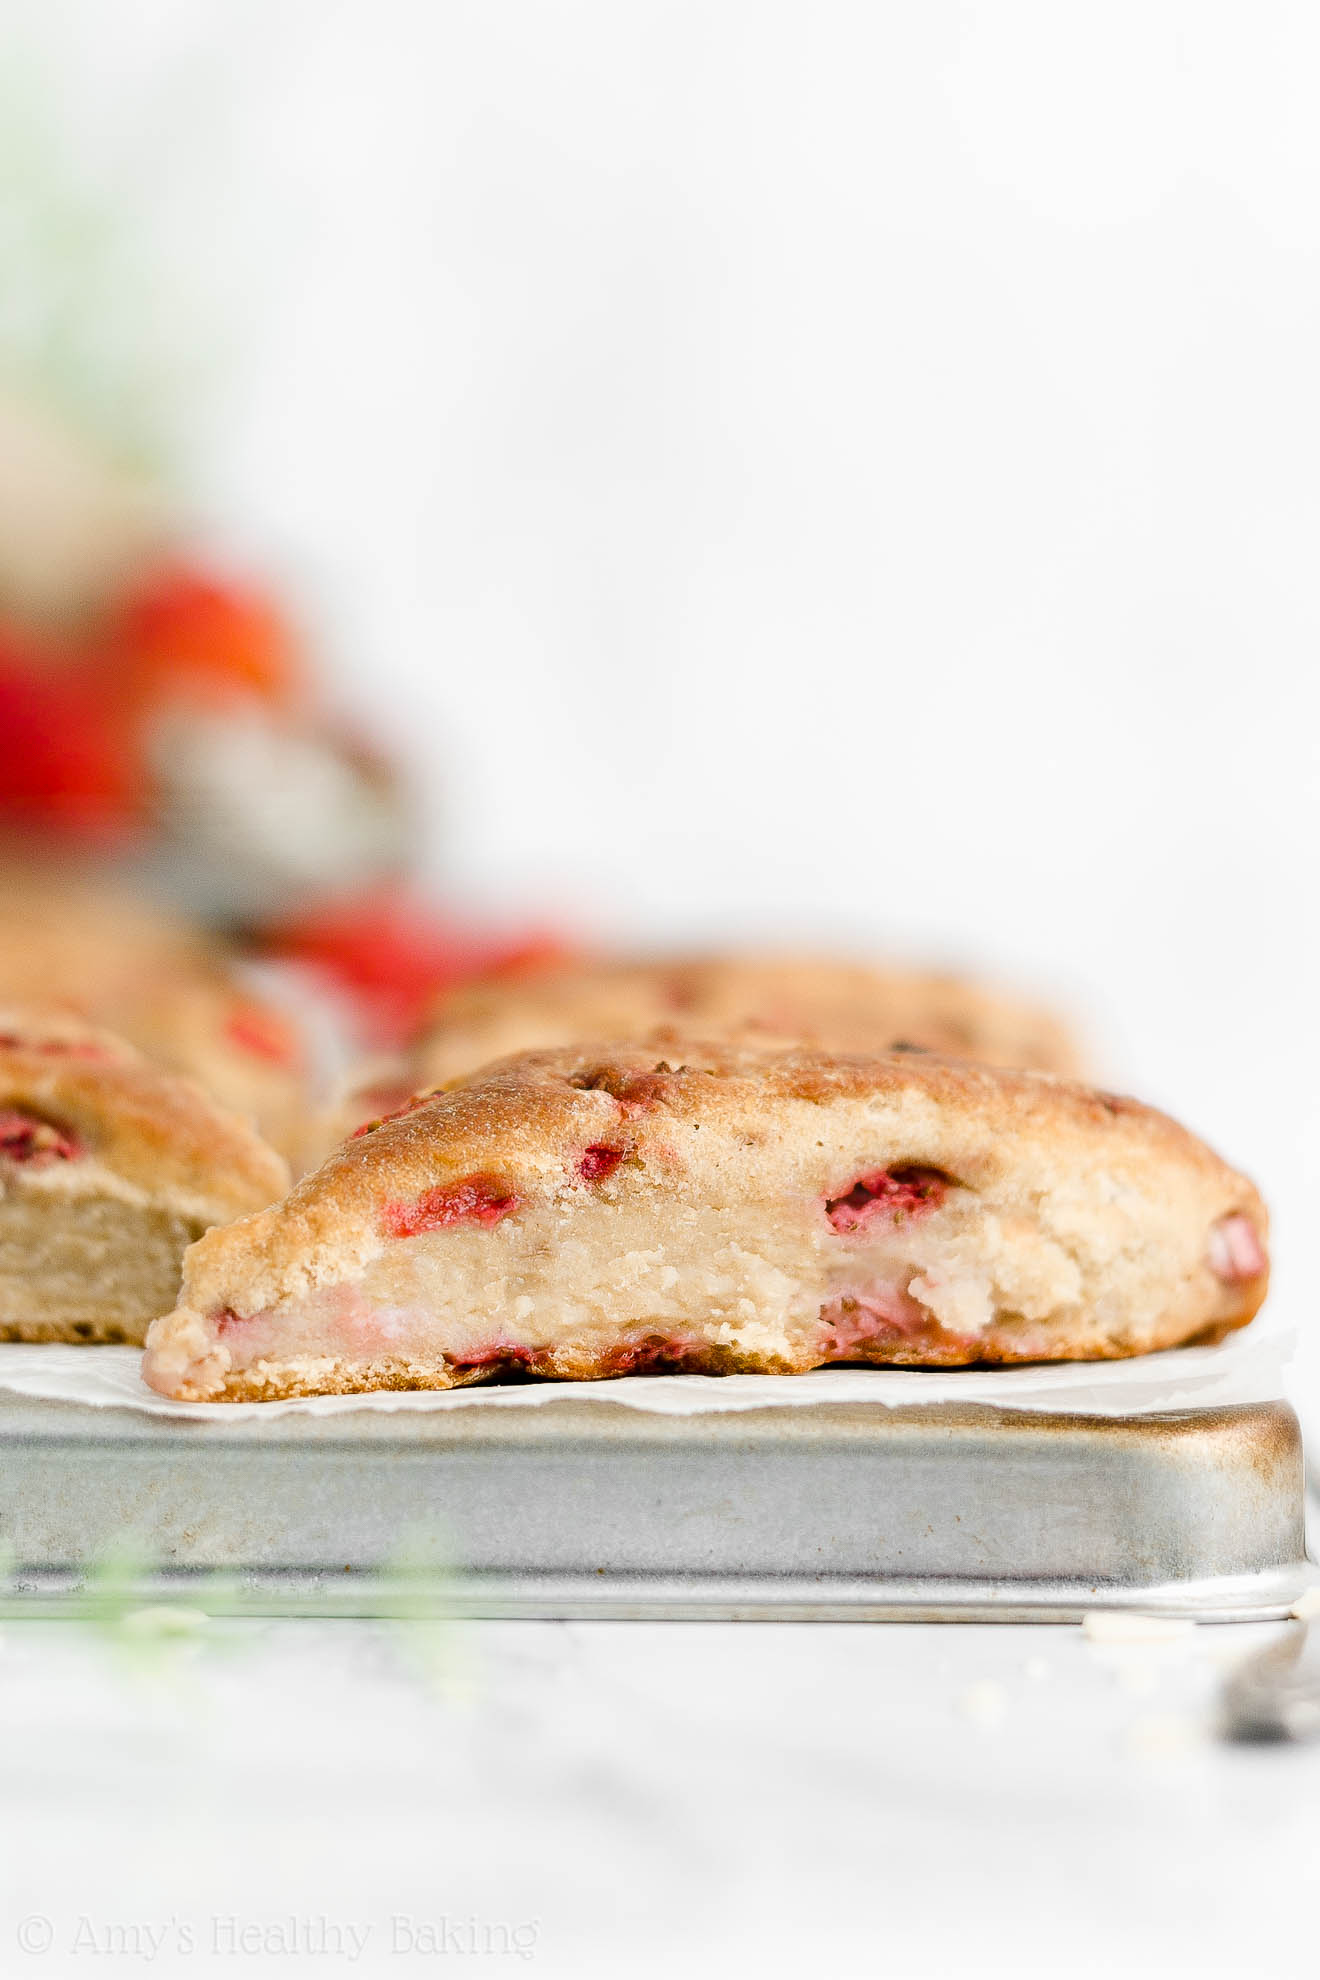 Best Easy Healthy Homemade Eggless Strawberry Scones Without Heavy Cream